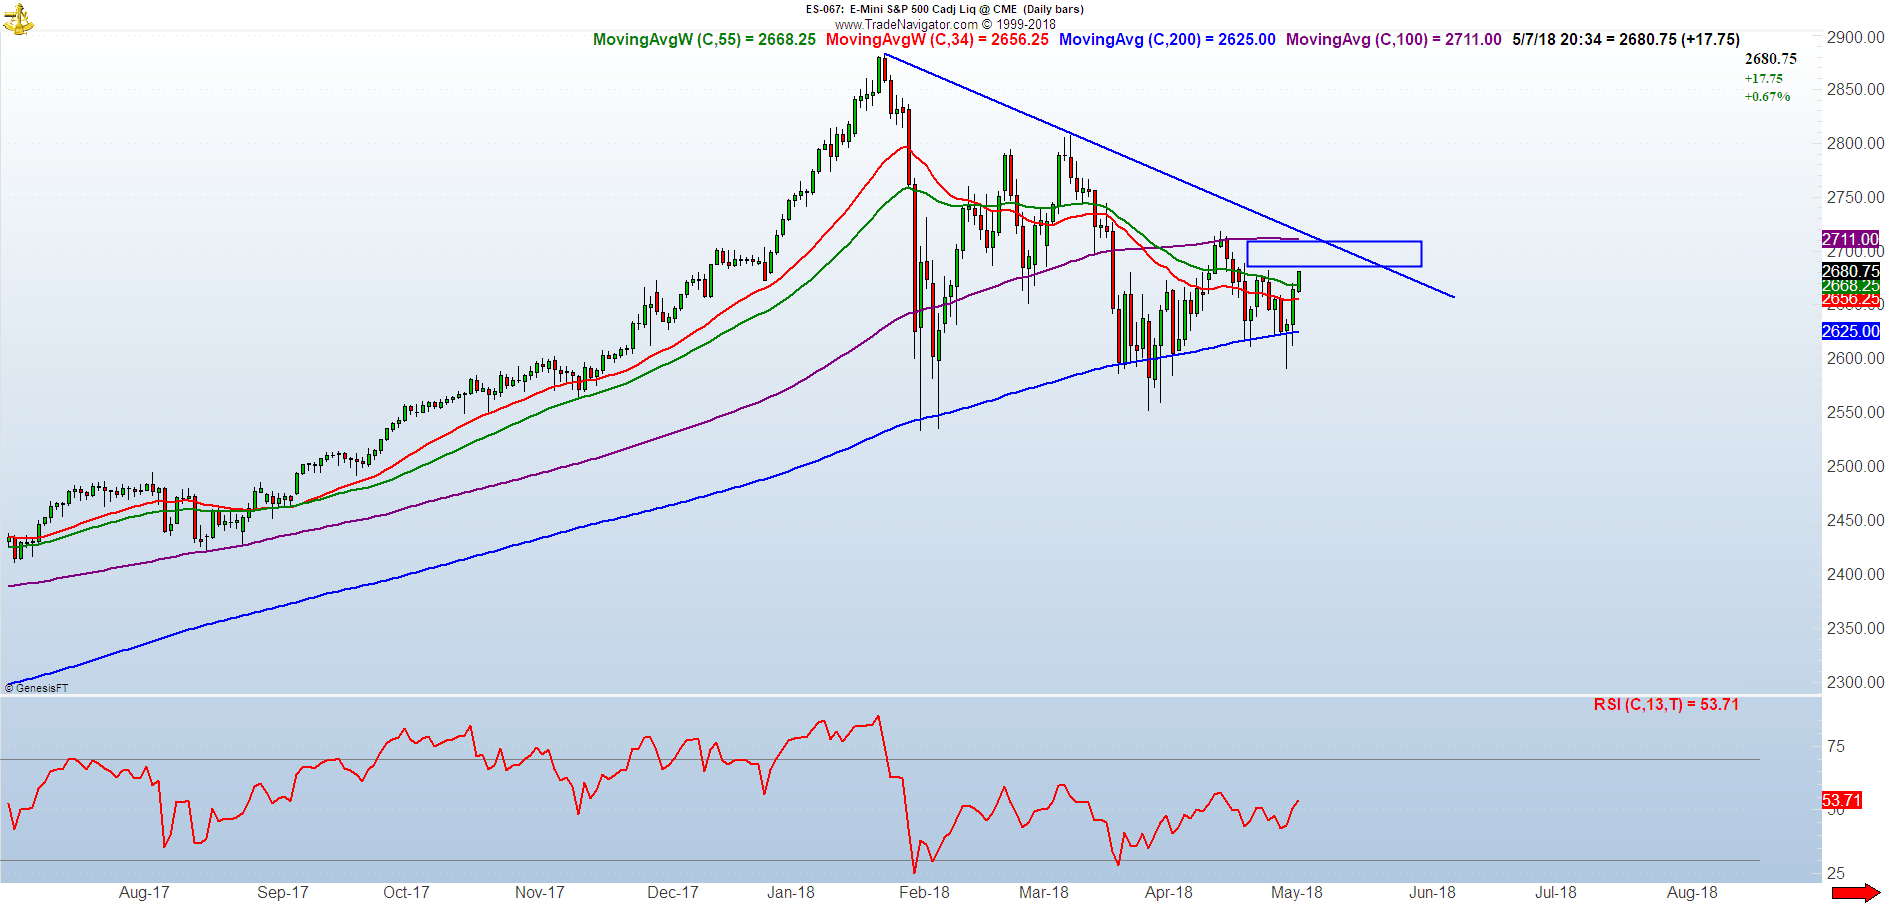 SP500 price action technical analysis